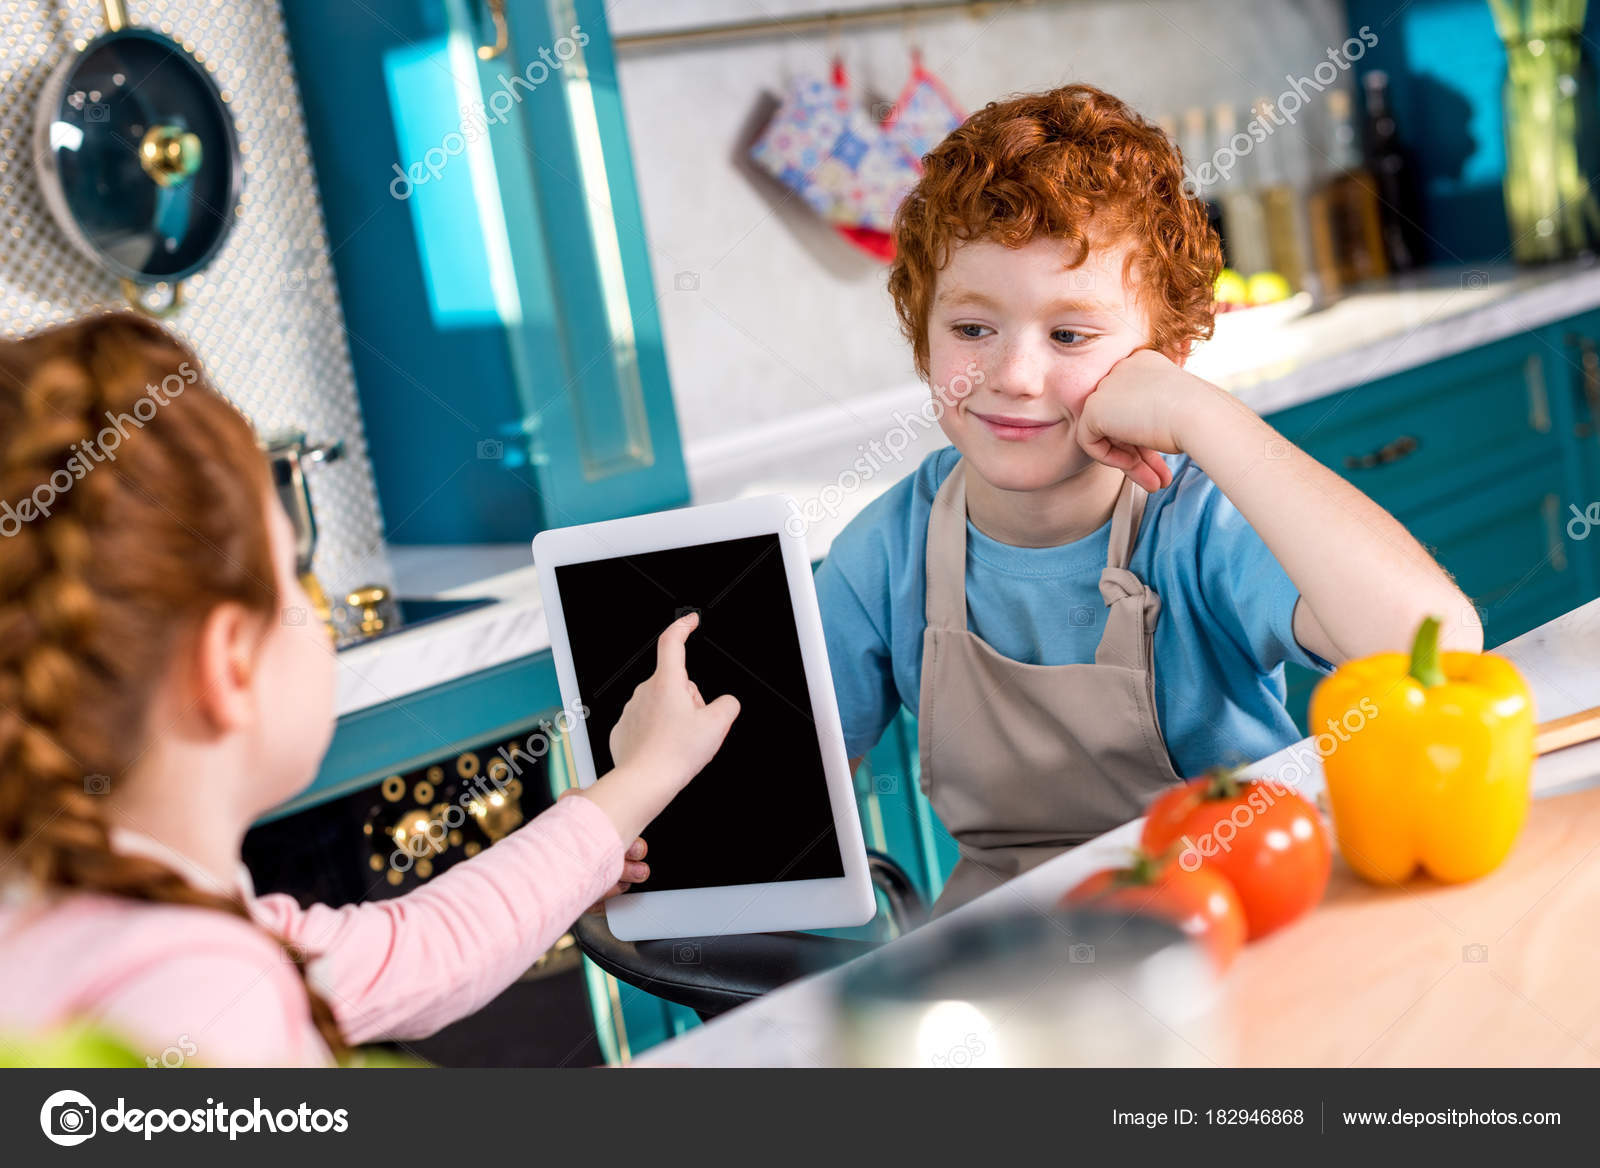 Cute Little Kids Using Digital Tablet While Cooking Together Kitchen ...